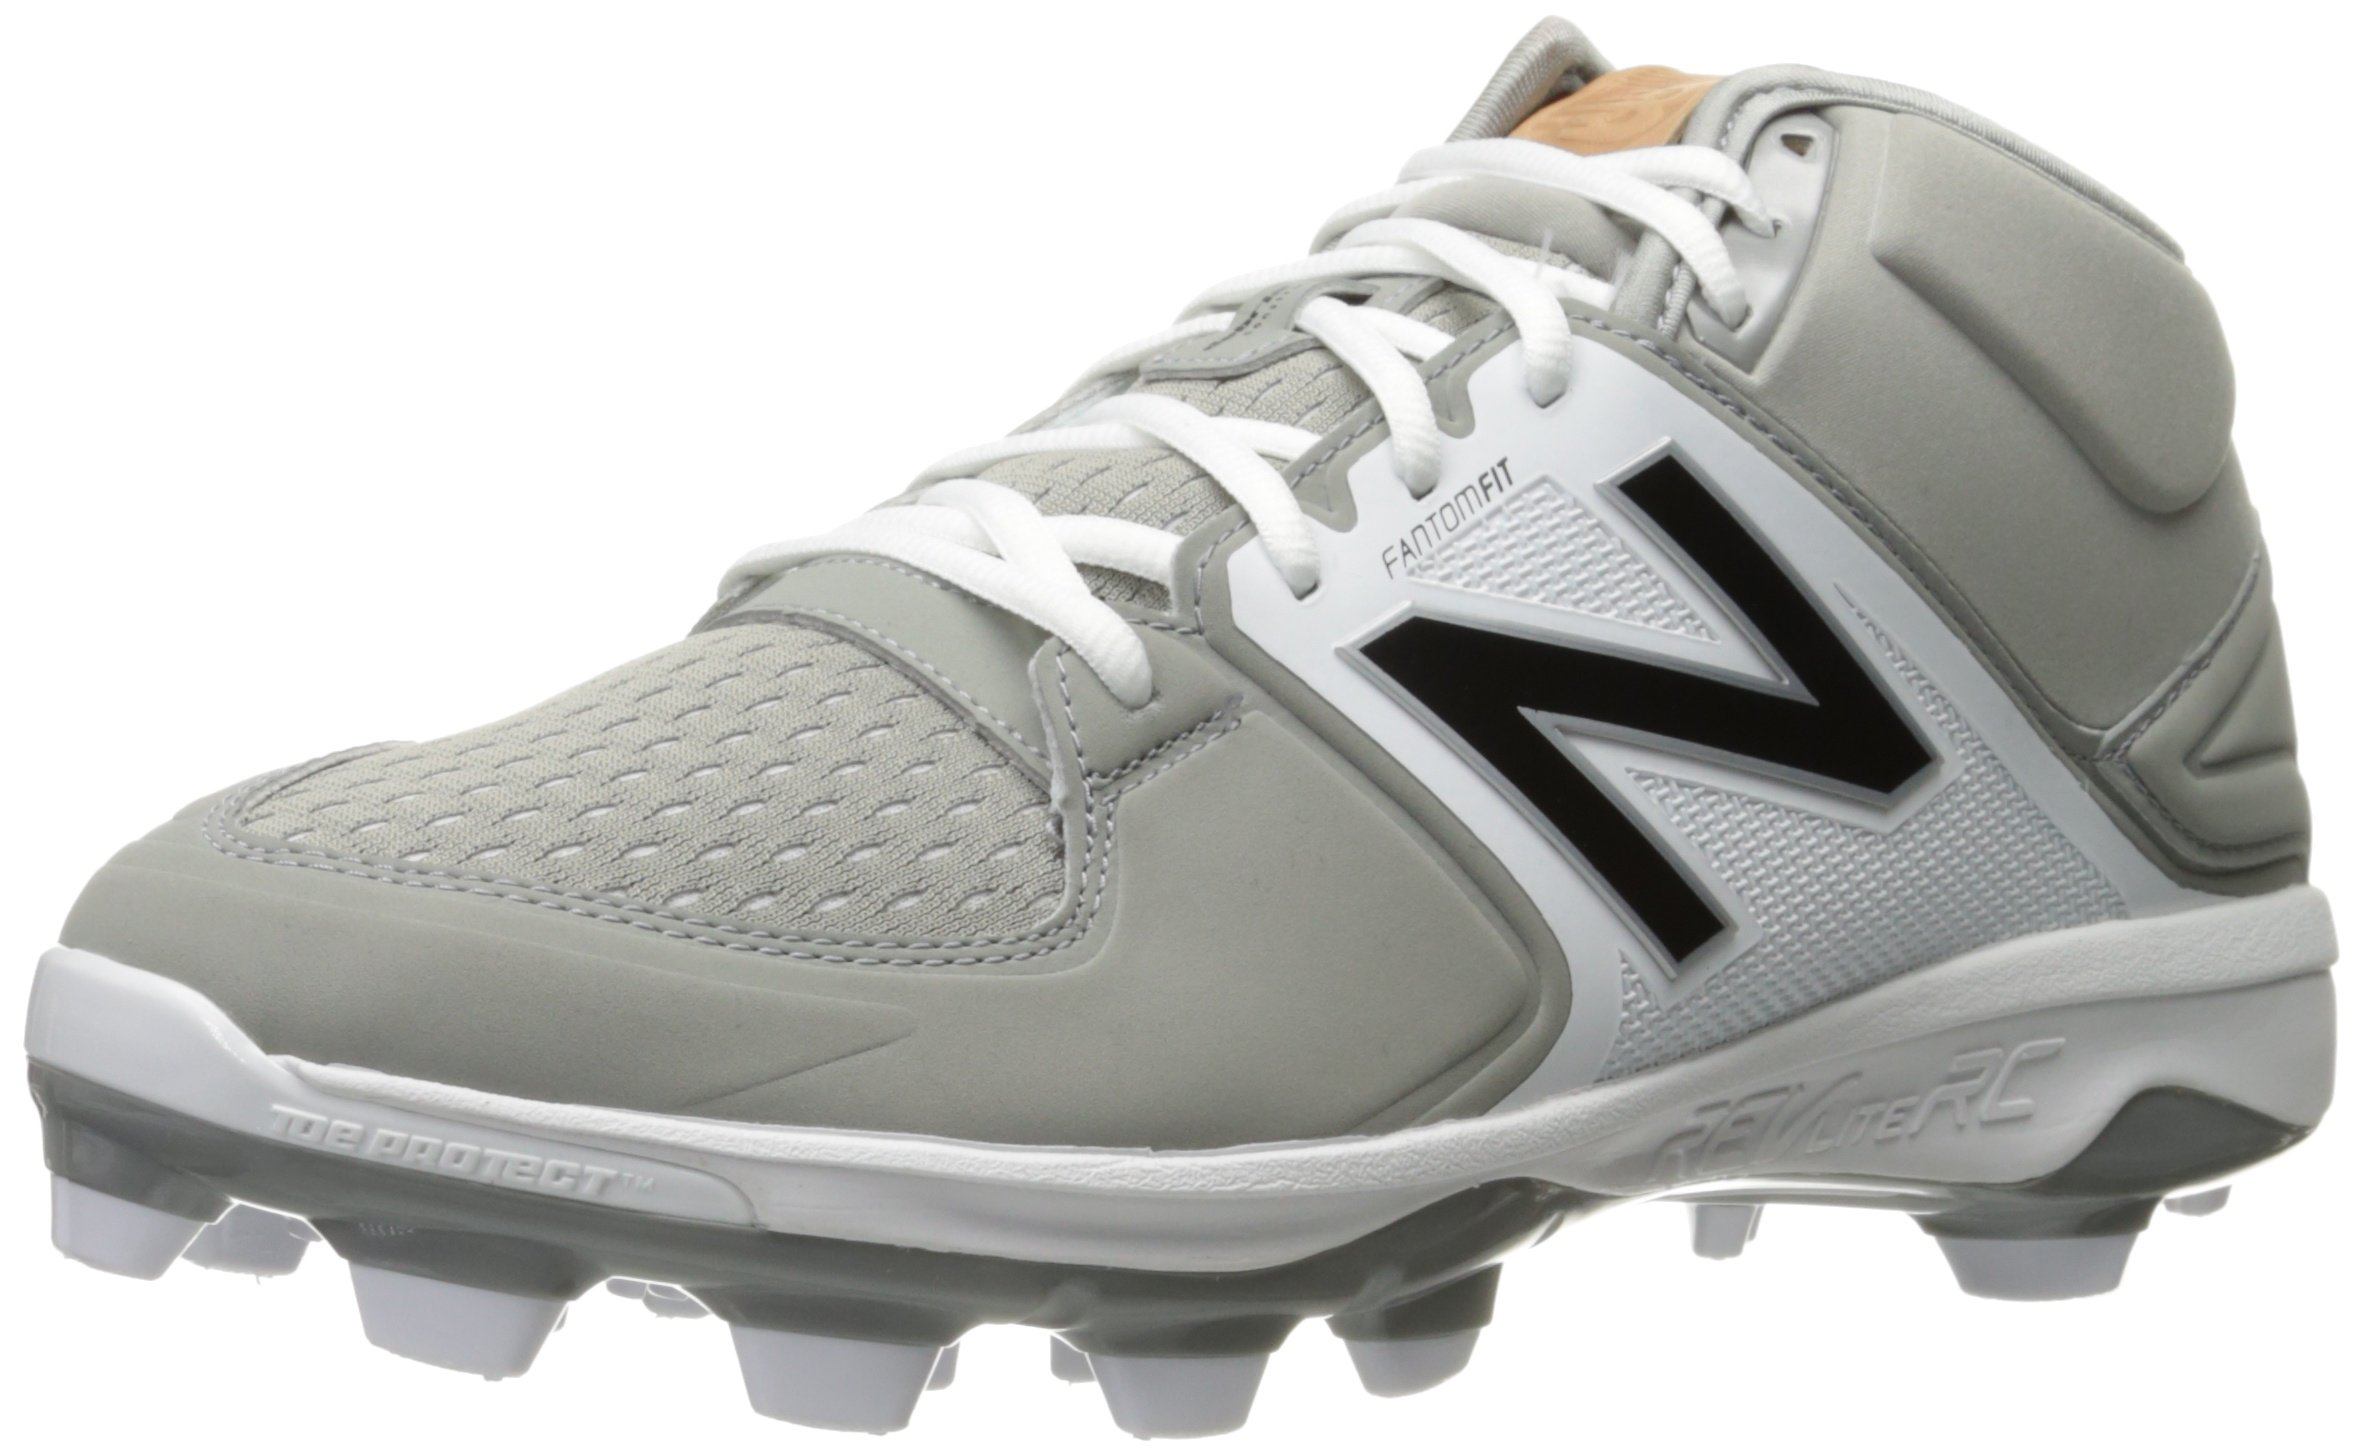 New Balance Men's PM3000v3 Molded Baseball Shoe, Grey/White, 10 2E US by New Balance